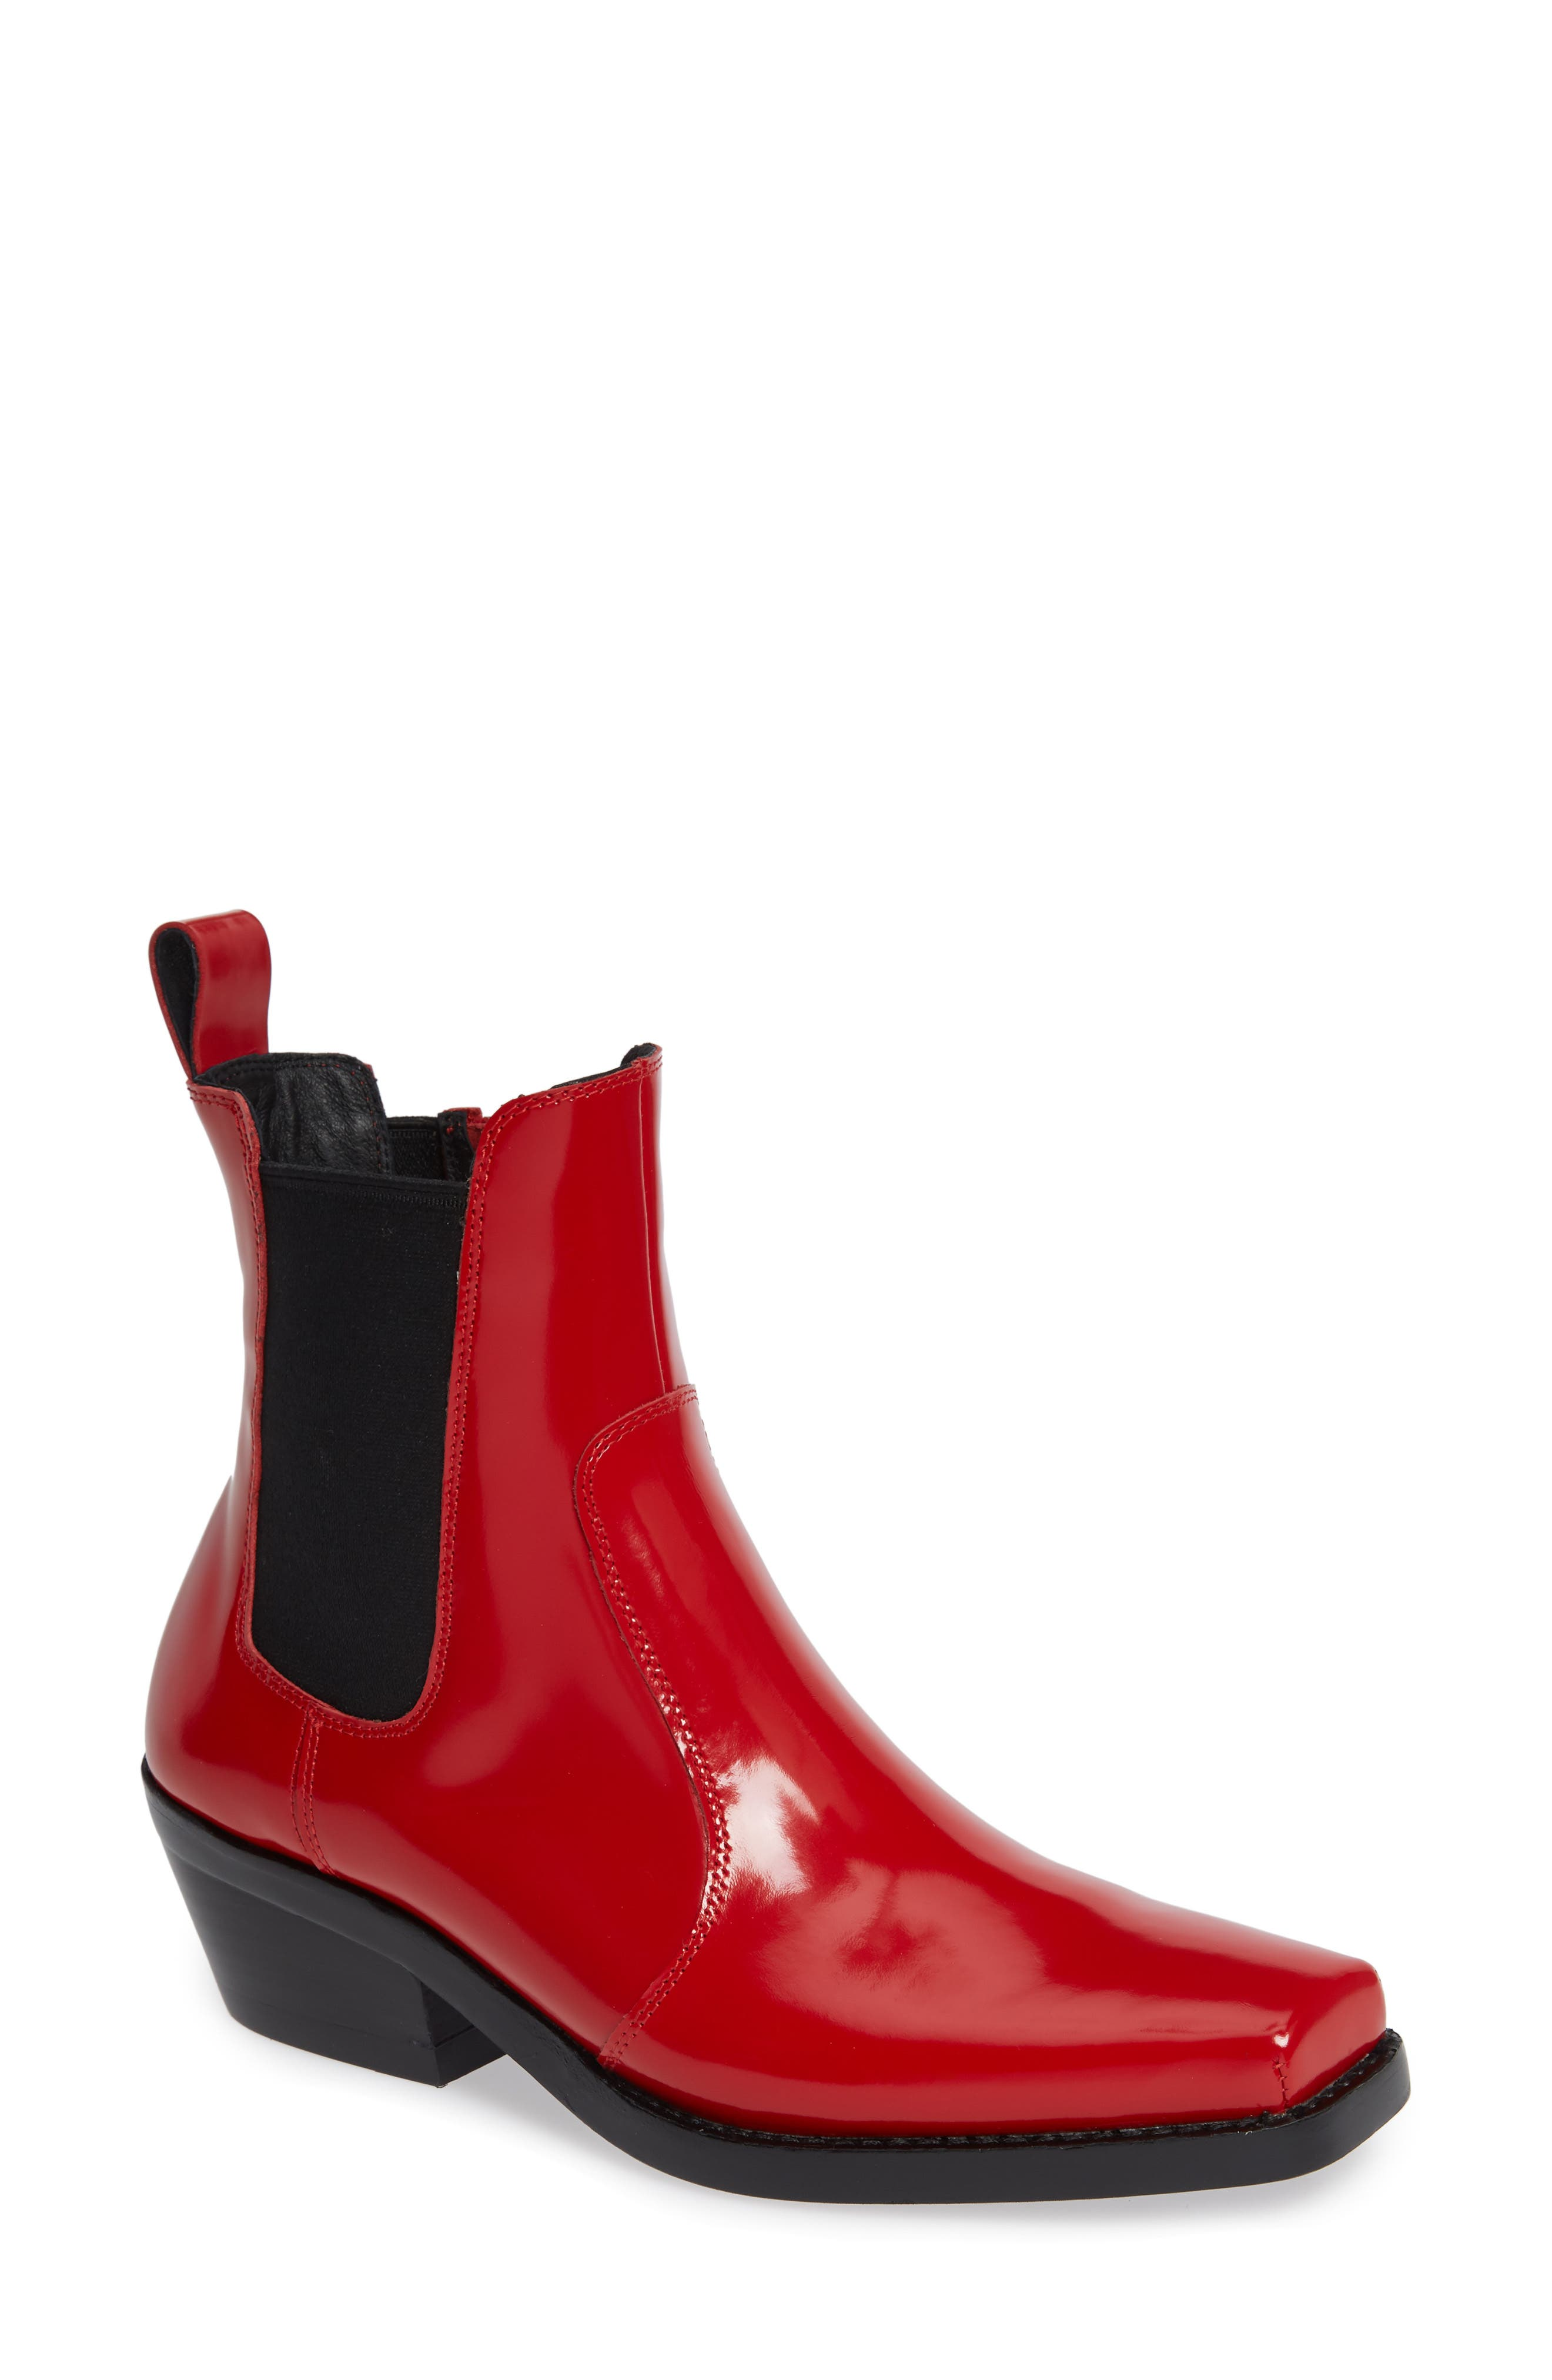 Jeffrey Campbell Poker Chelsea Boot, Red